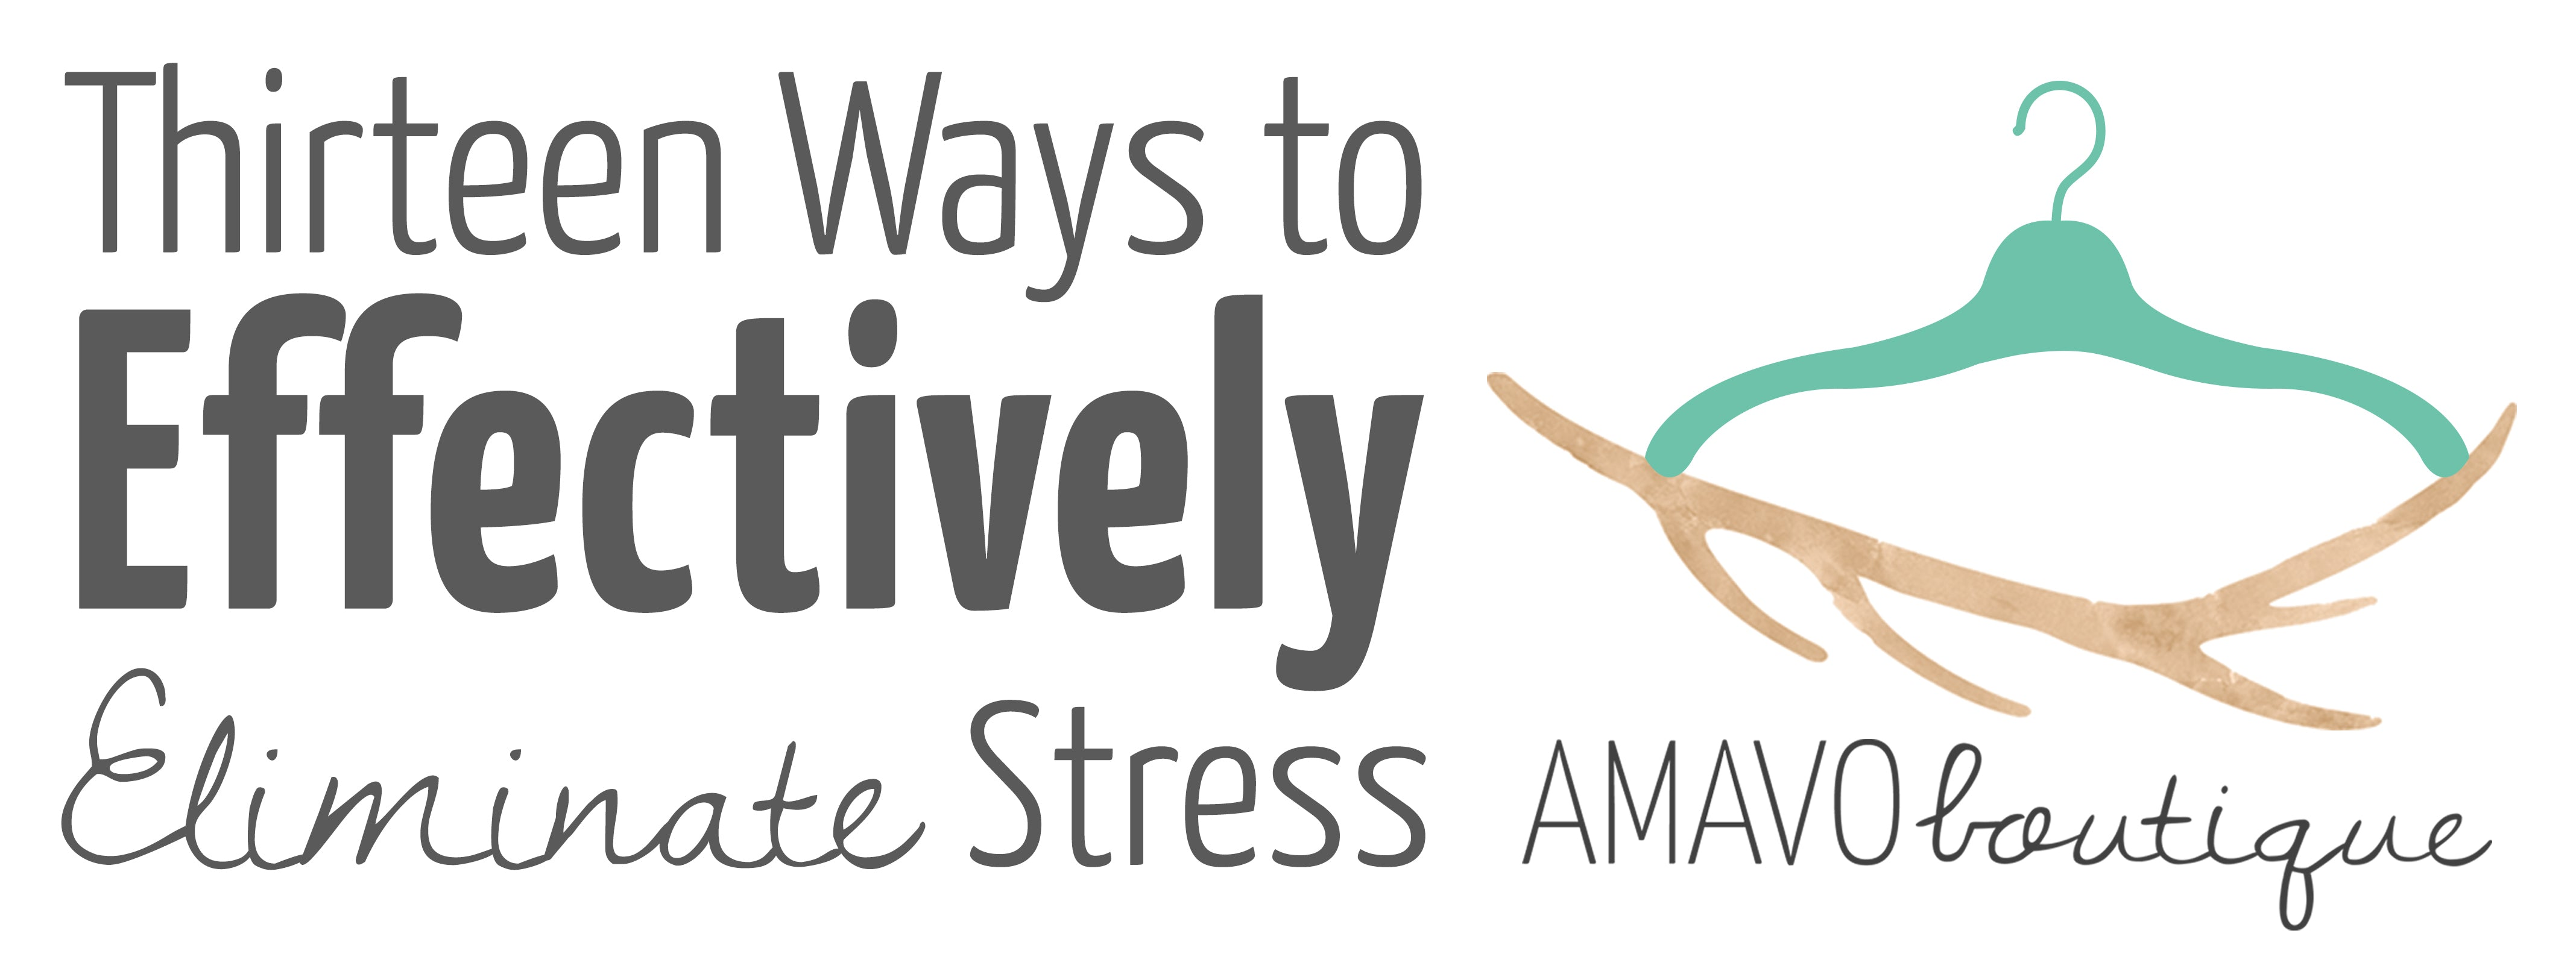 13 Ways to Effectively Eliminate Stress